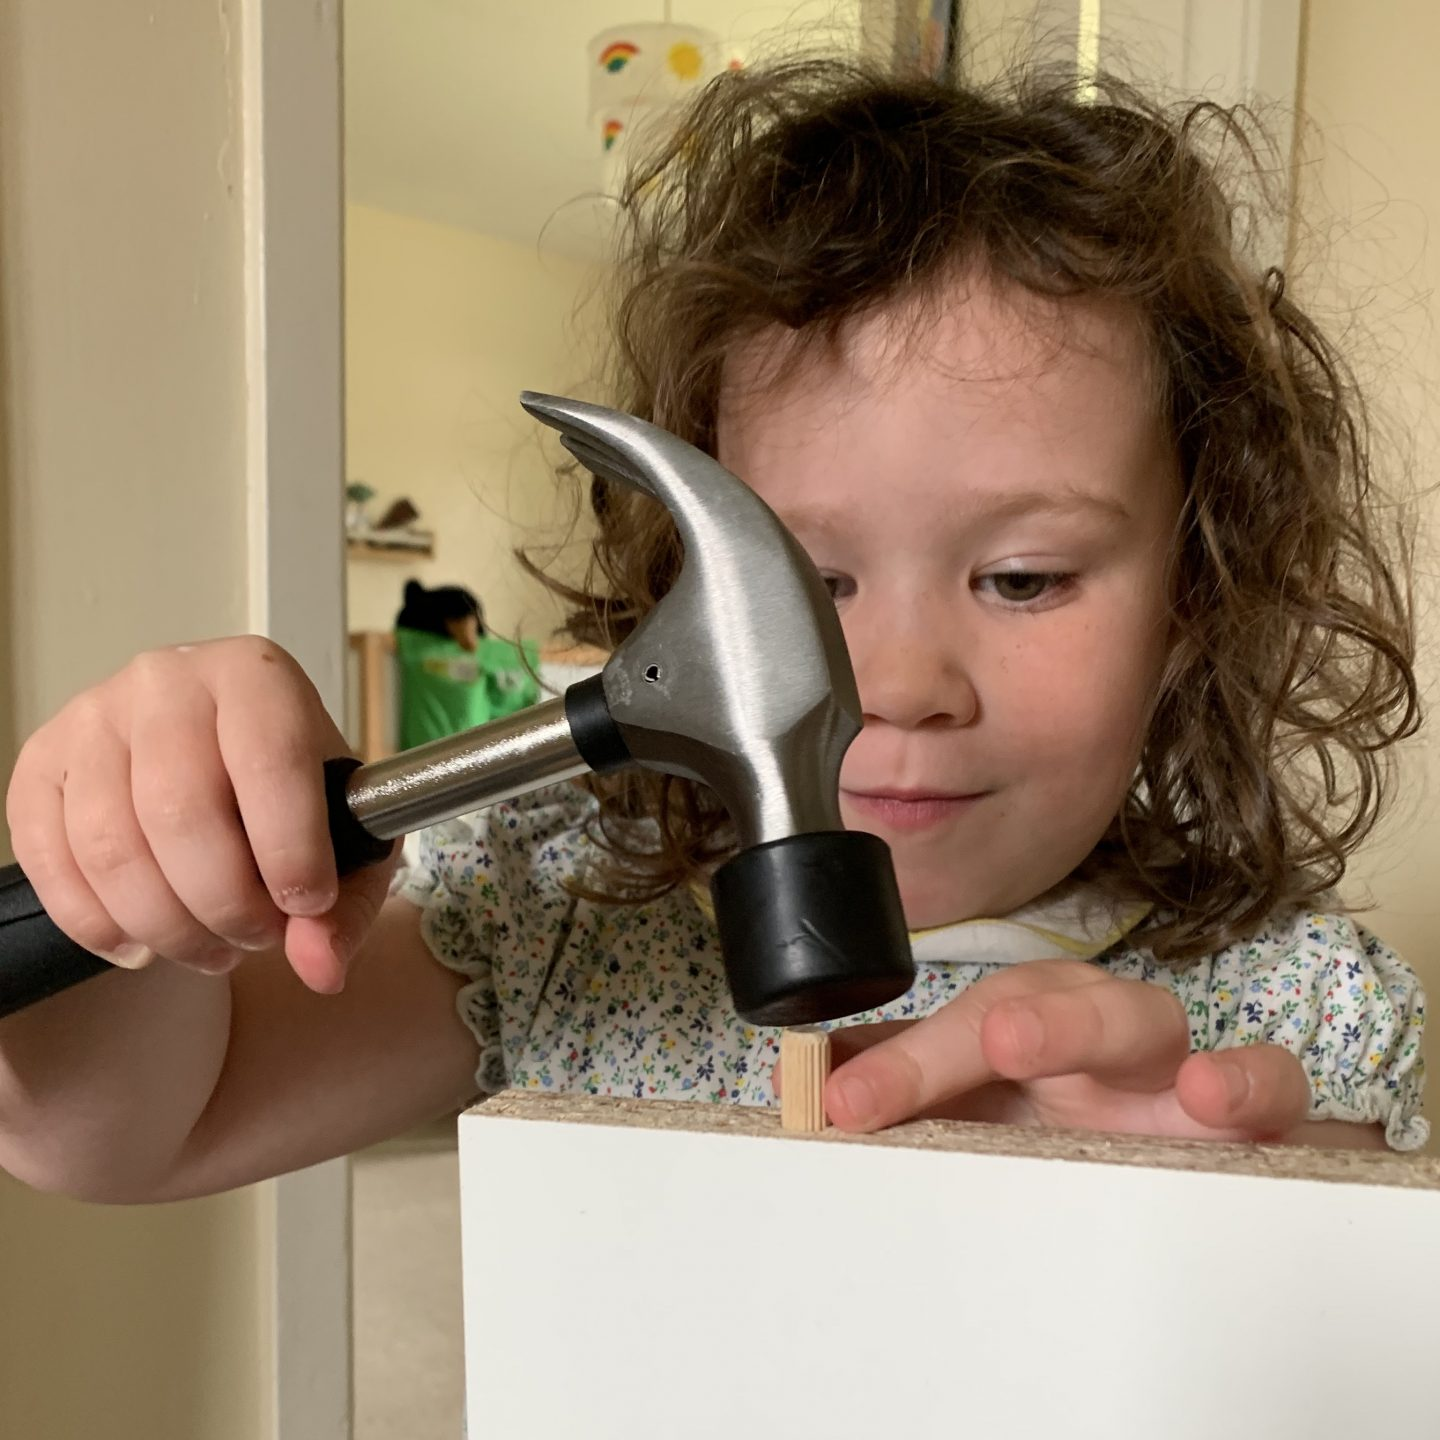 A child hammering  a nail into furniture